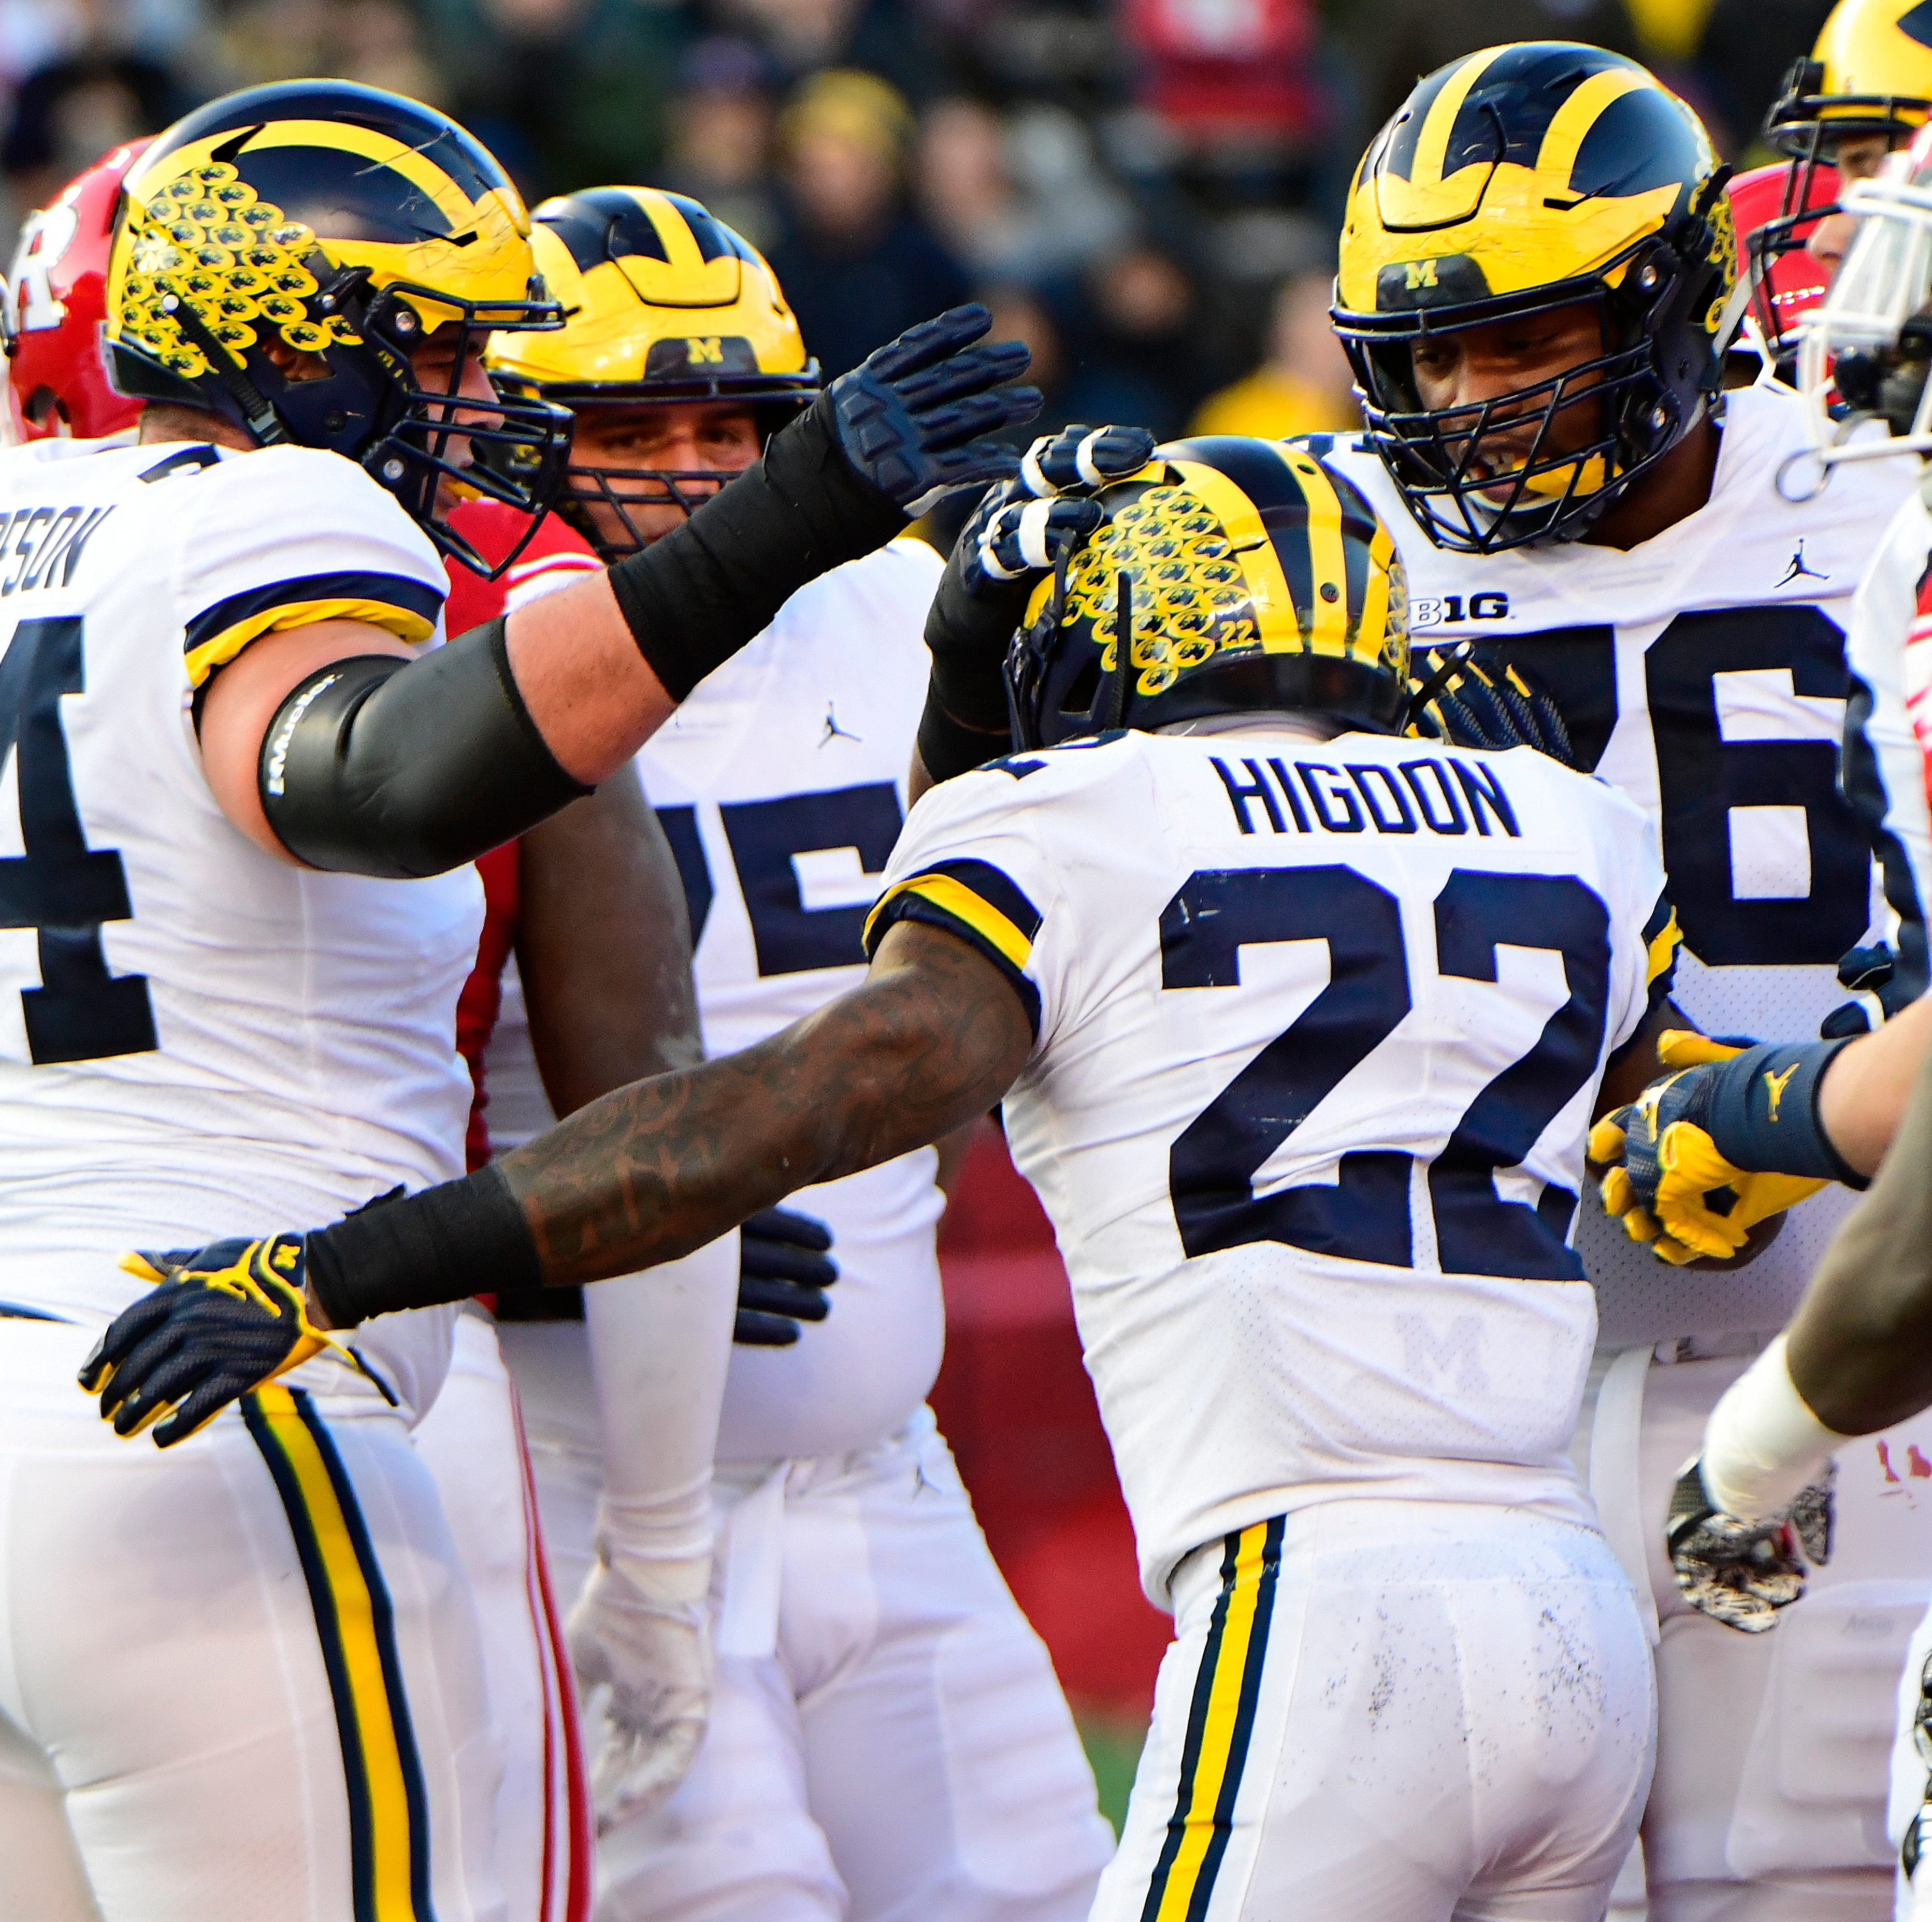 'Strong resume' keeps Michigan at No. 4 in College Football Playoff rankings